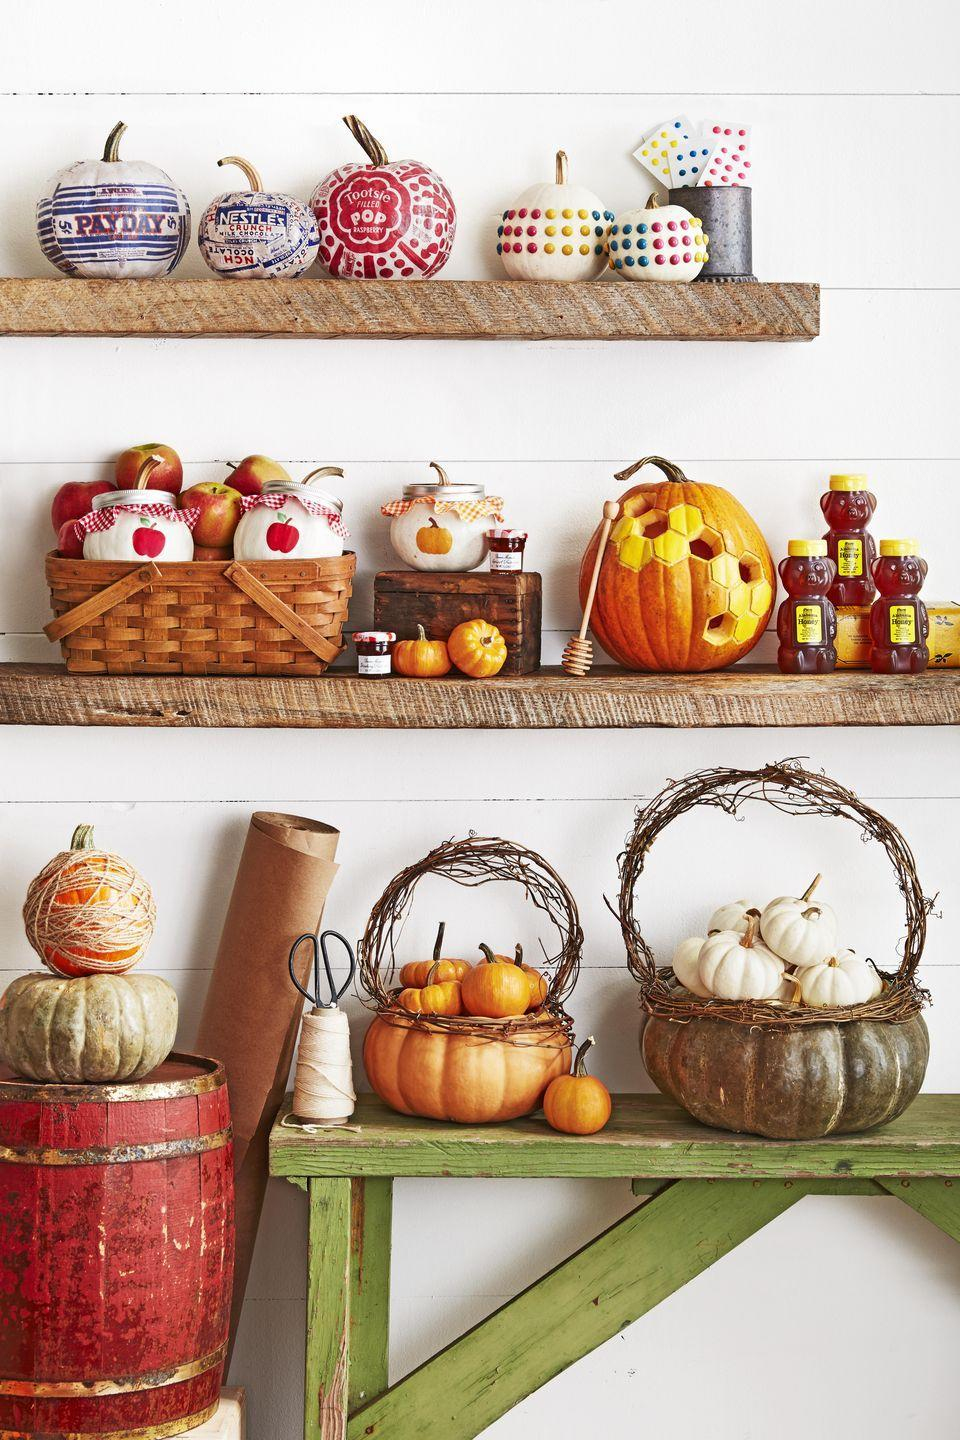 <p>Fill these cutie pumpkin baskets with mini pumpkins or candy for kiddos.<br></p><p>Cut off the top quarter of a flat pumpkin (this is a Musquee de Provence variety); scoop out pulp and seeds. Attach lengths of grapevine just below the opening with T-pins. Attach a grapevine handle just inside the opening with T-pins. Nestle mini pumpkins in the basket. </p>